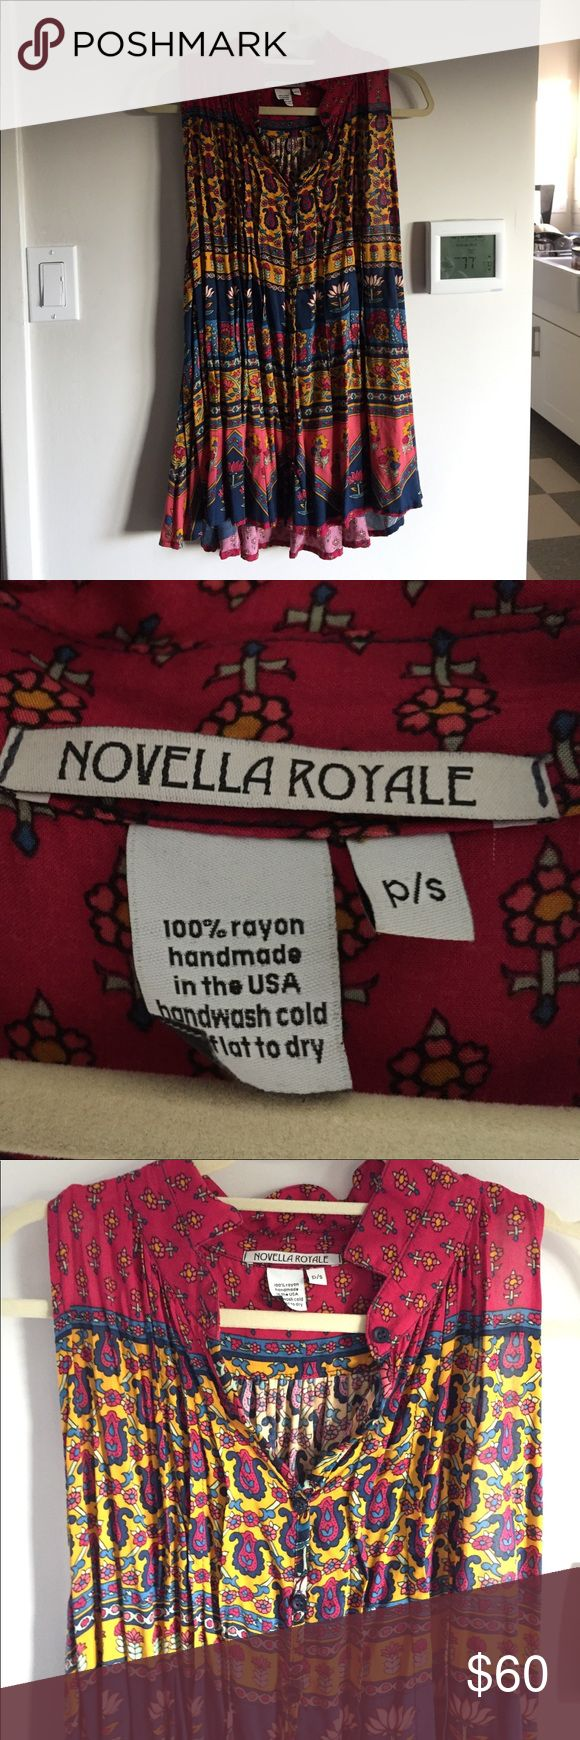 Novella Royale - Flowy Top - Small Worn twice and in perfect condition! No signs of wear and adorable boho top to wear with leggings or even as a beach cover up. Novella Royale Tops Blouses